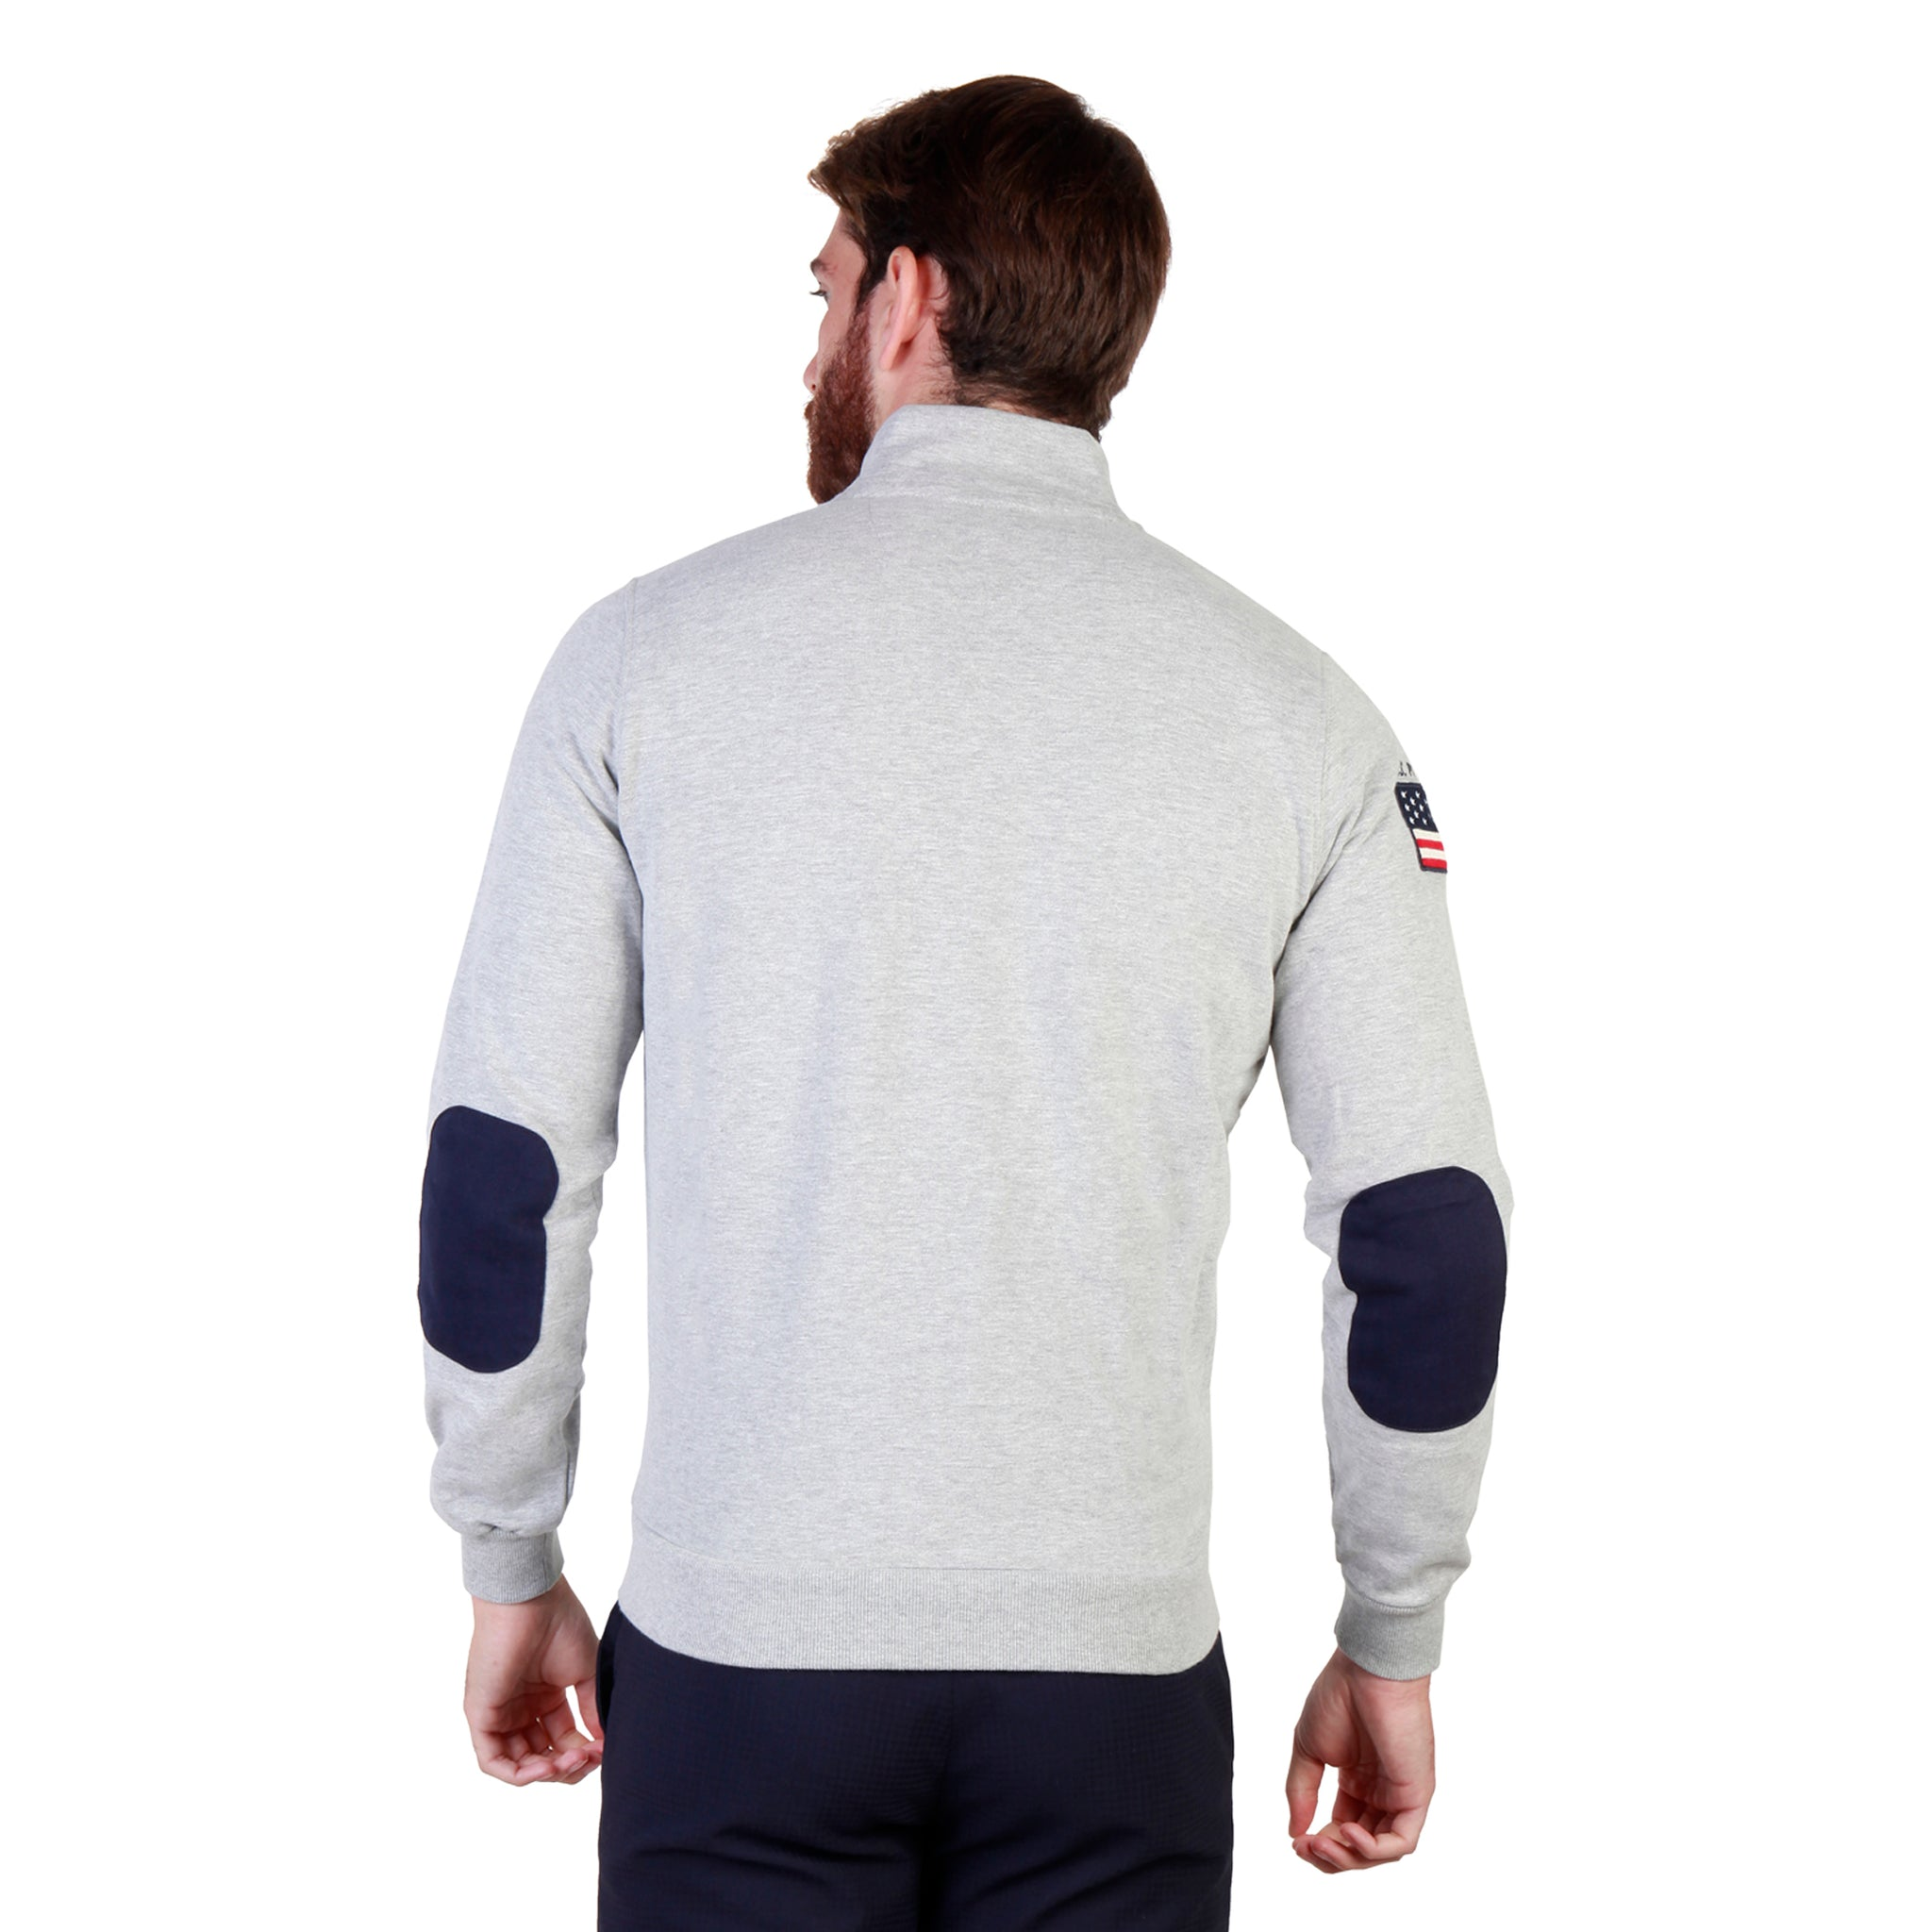 U.S. Polo 43485_47130 Sweatshirts